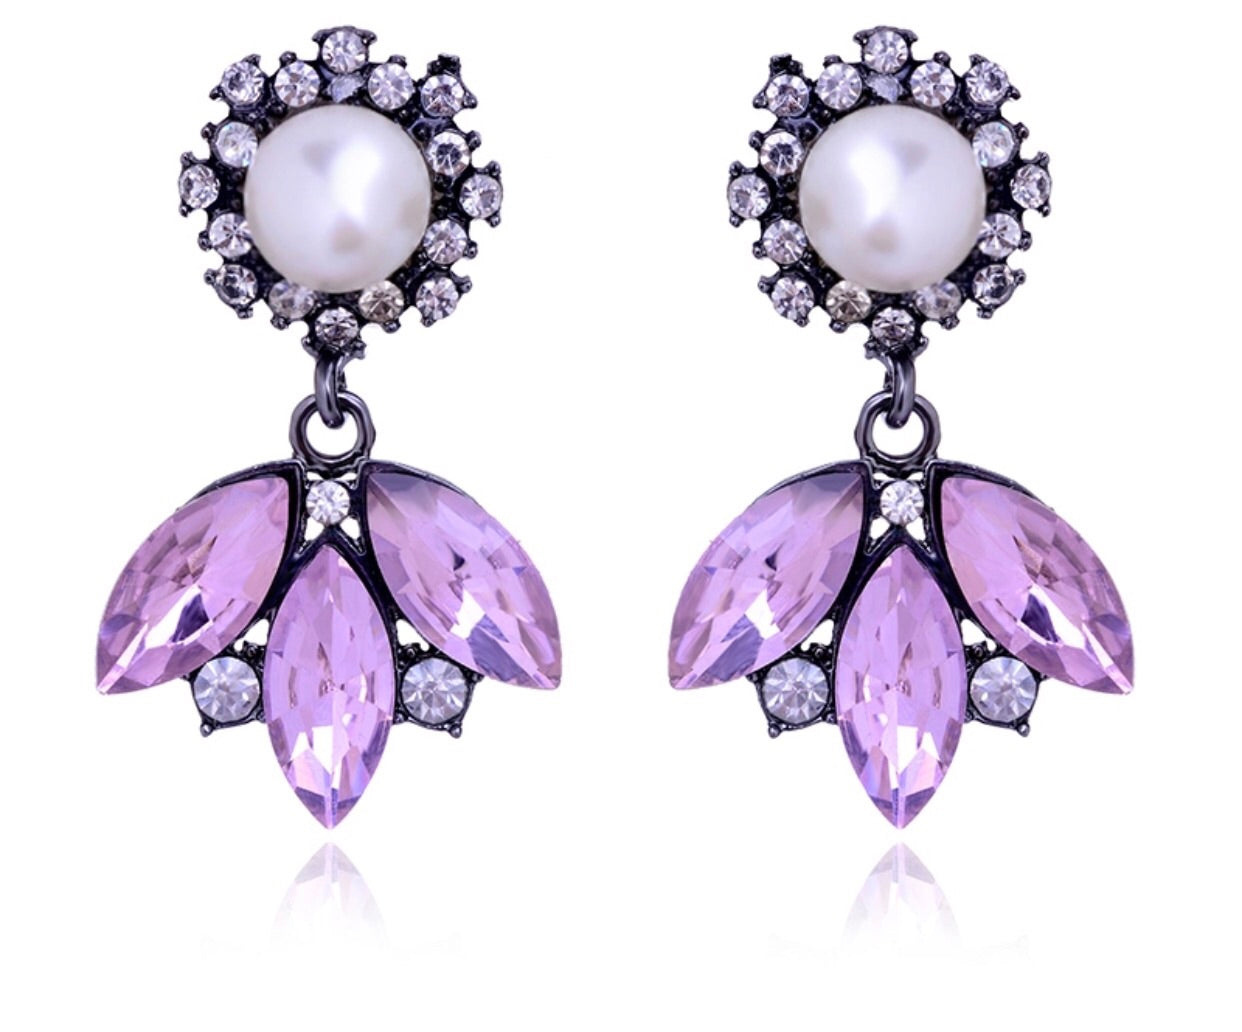 Lilac crystal & pearl earrings